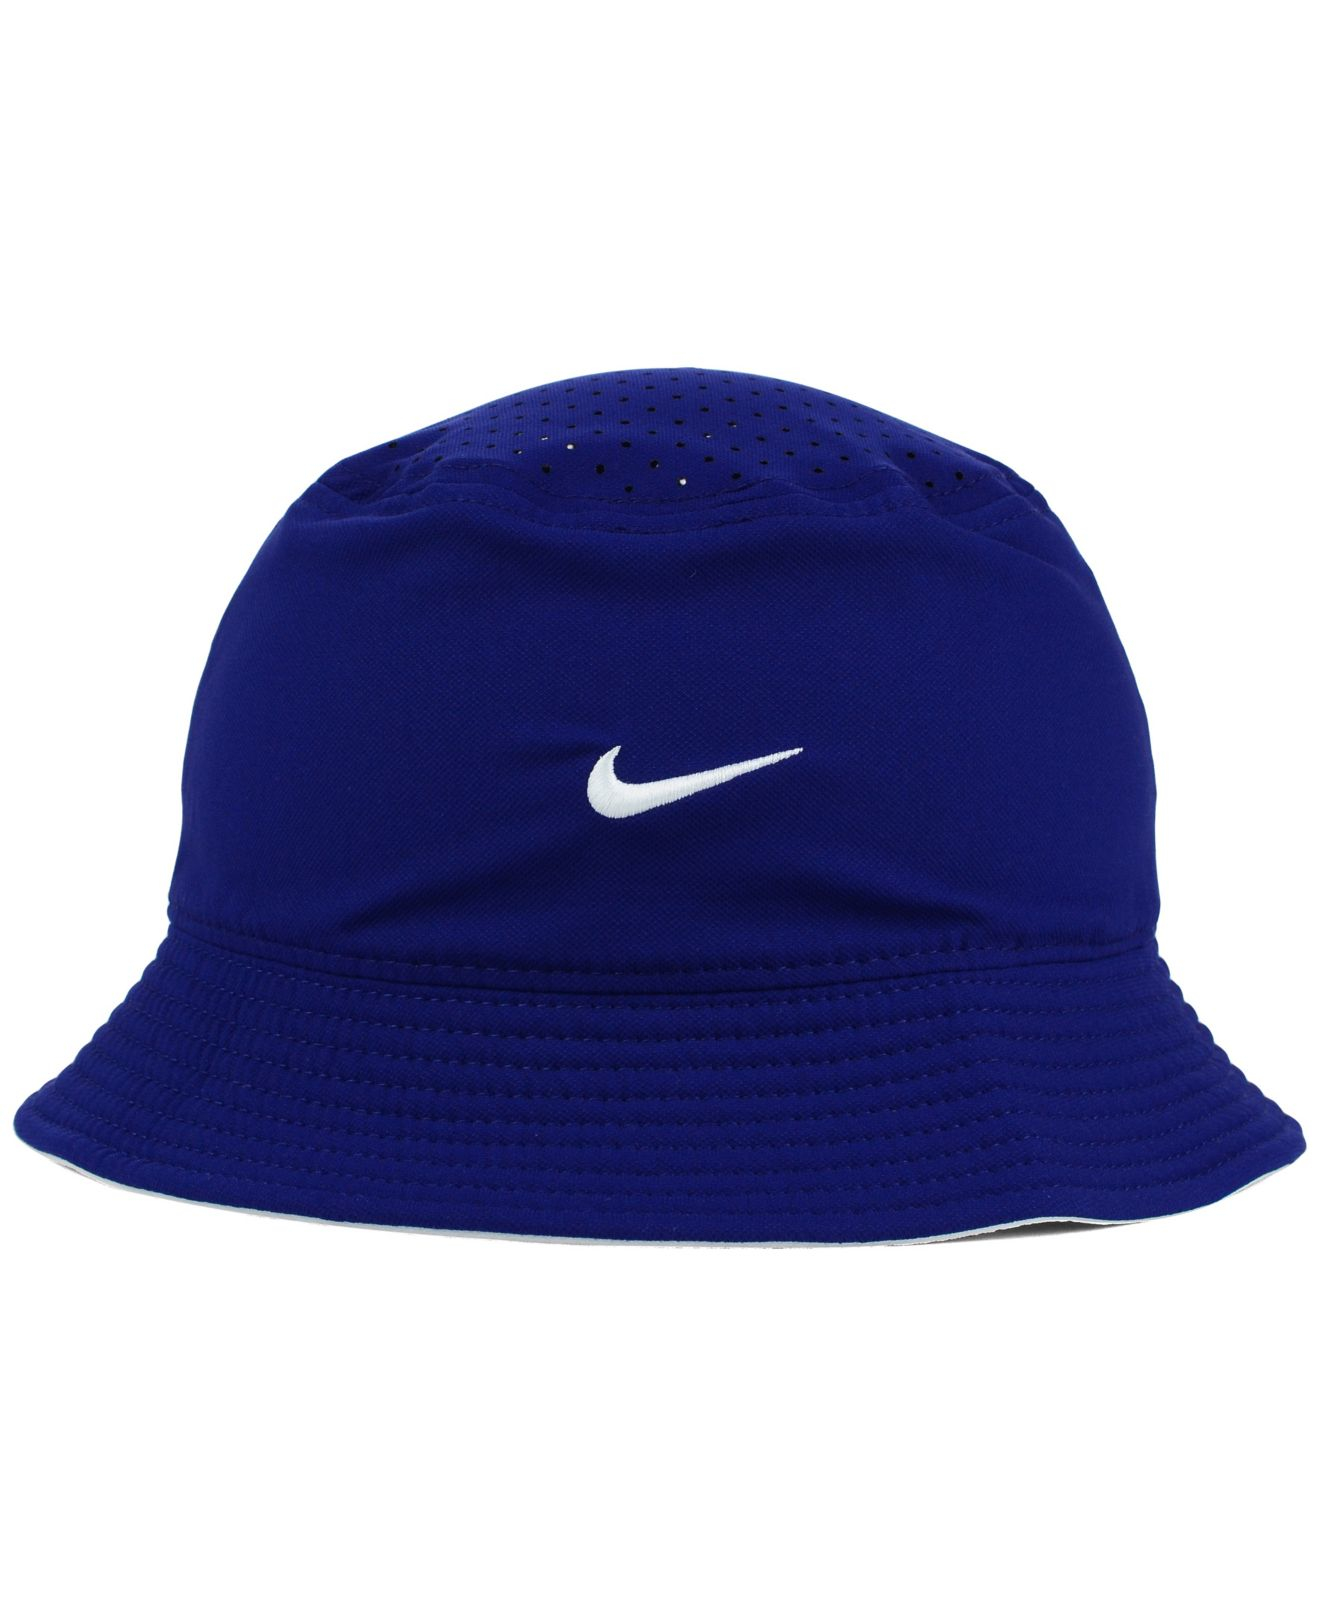 10c6d7c9 ... discount code for lyst nike los angeles dodgers vapor dri fit bucket hat  in blue for